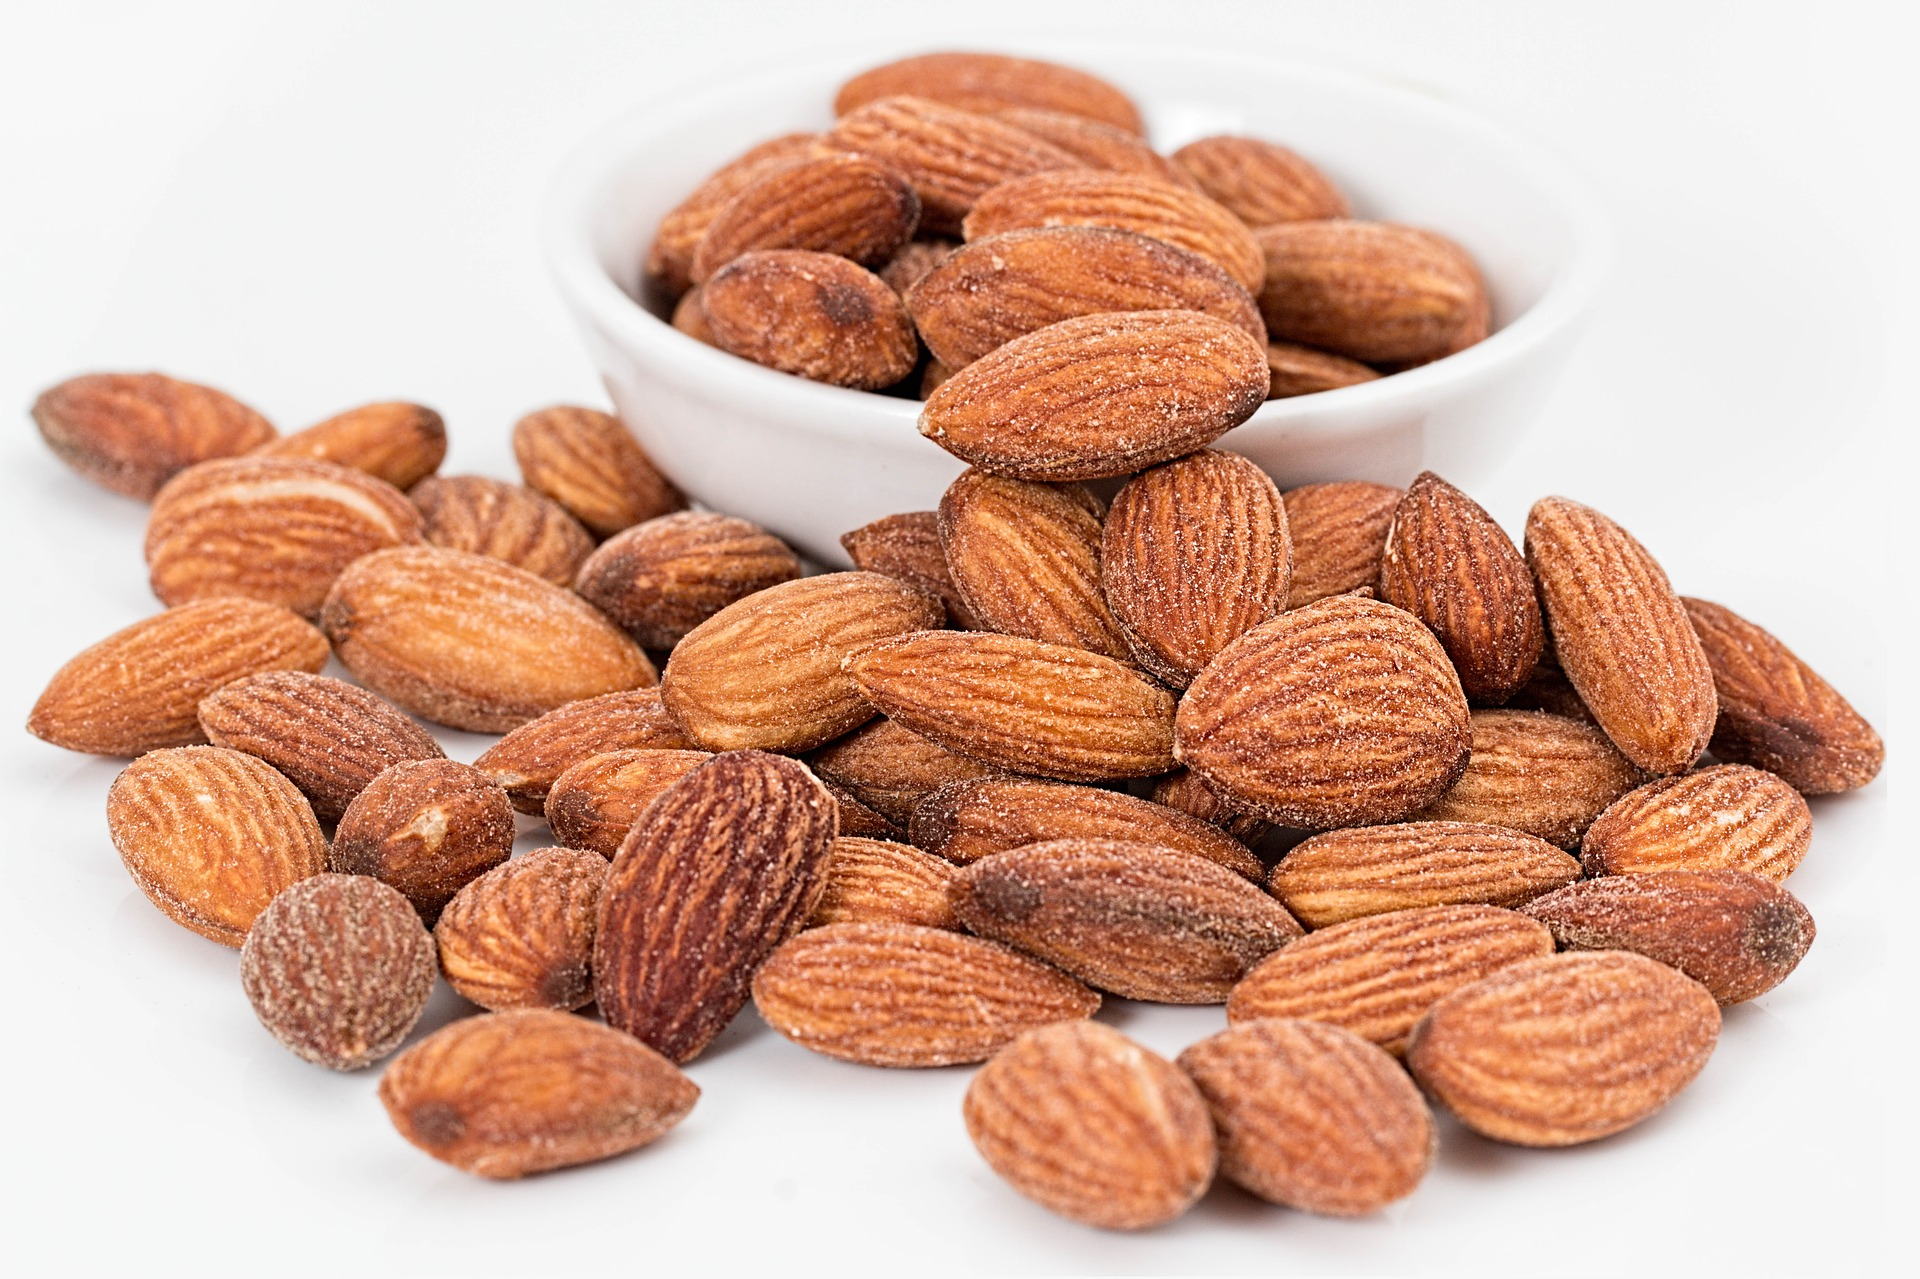 almond rich in iron